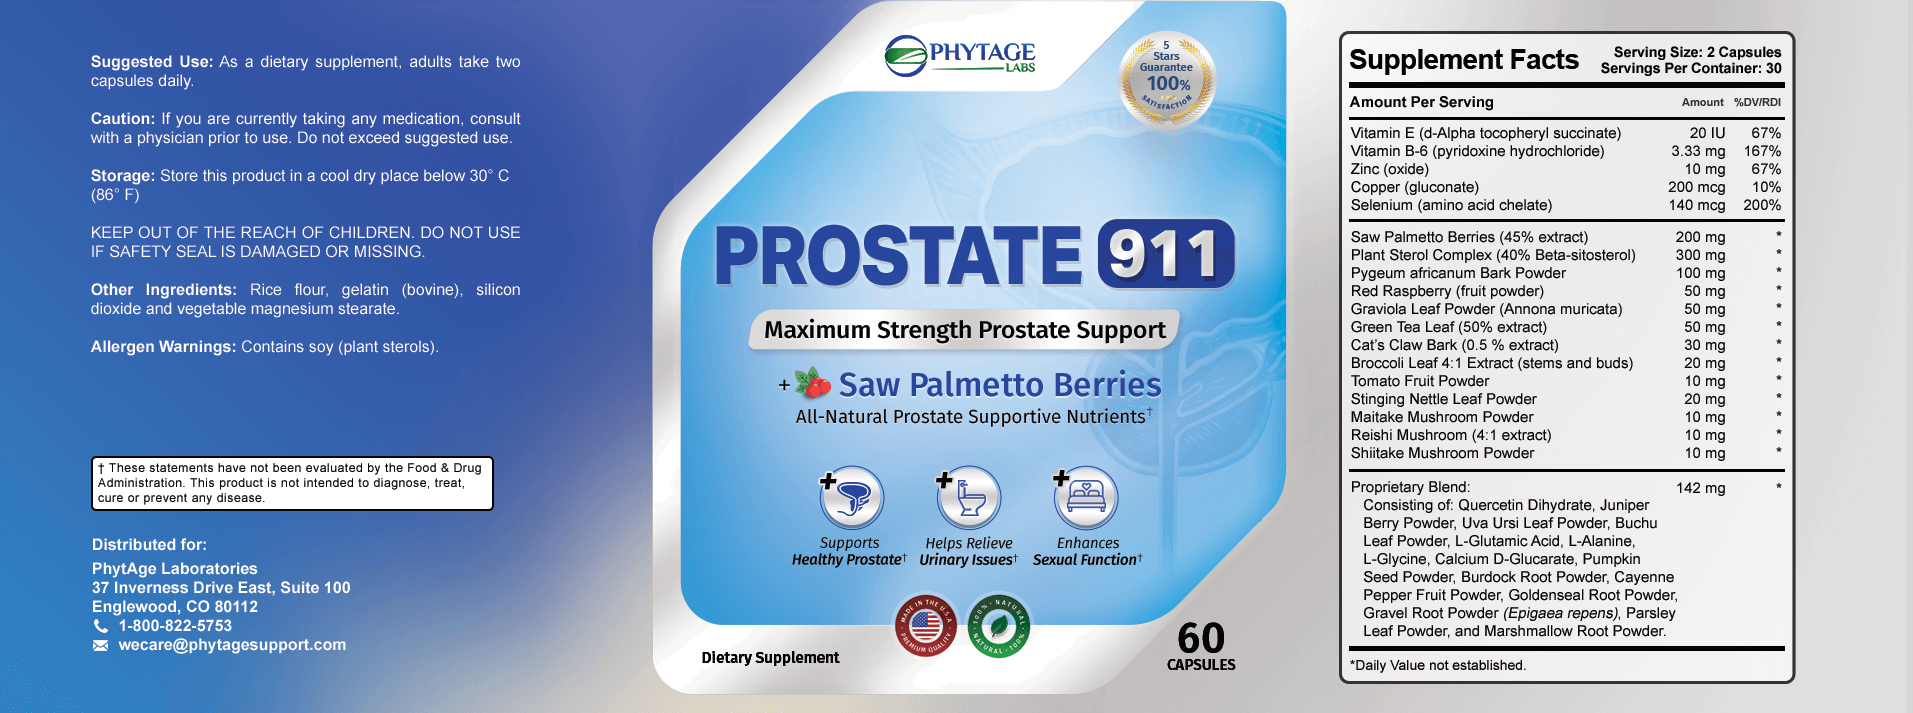 prostate 911 ingredients